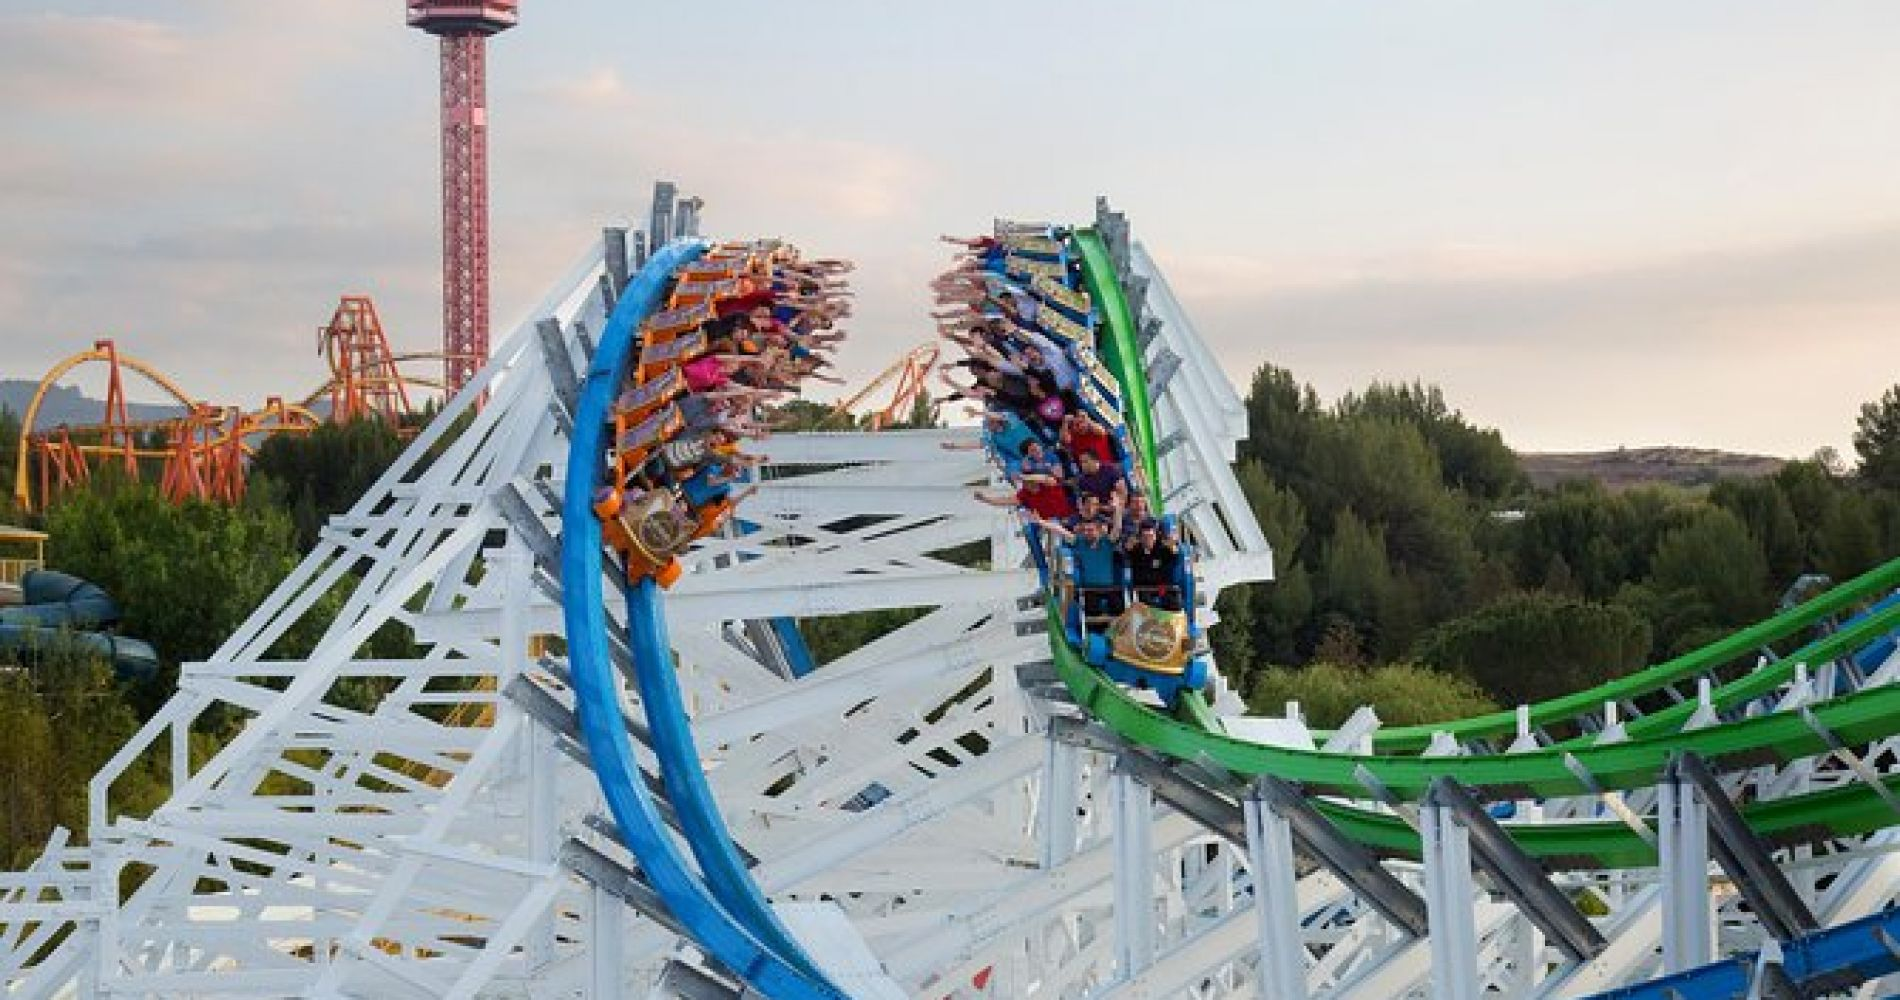 Skip the Line: Six Flags Magic Mountain Admission Tickets